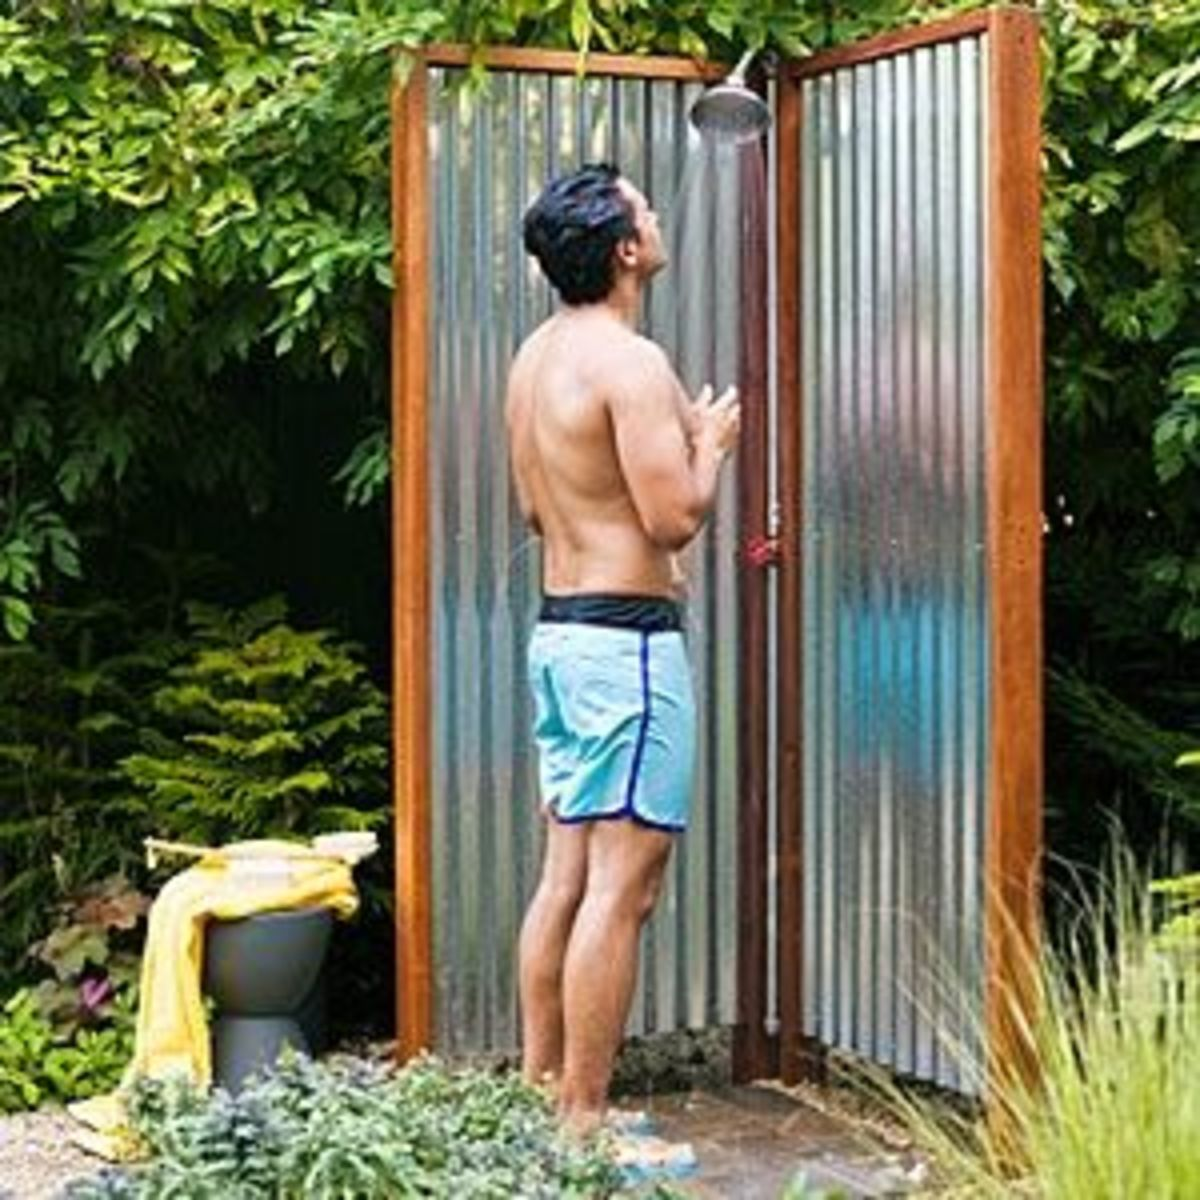 DIY Projects - Good Tutorial for an Outdoor Shower